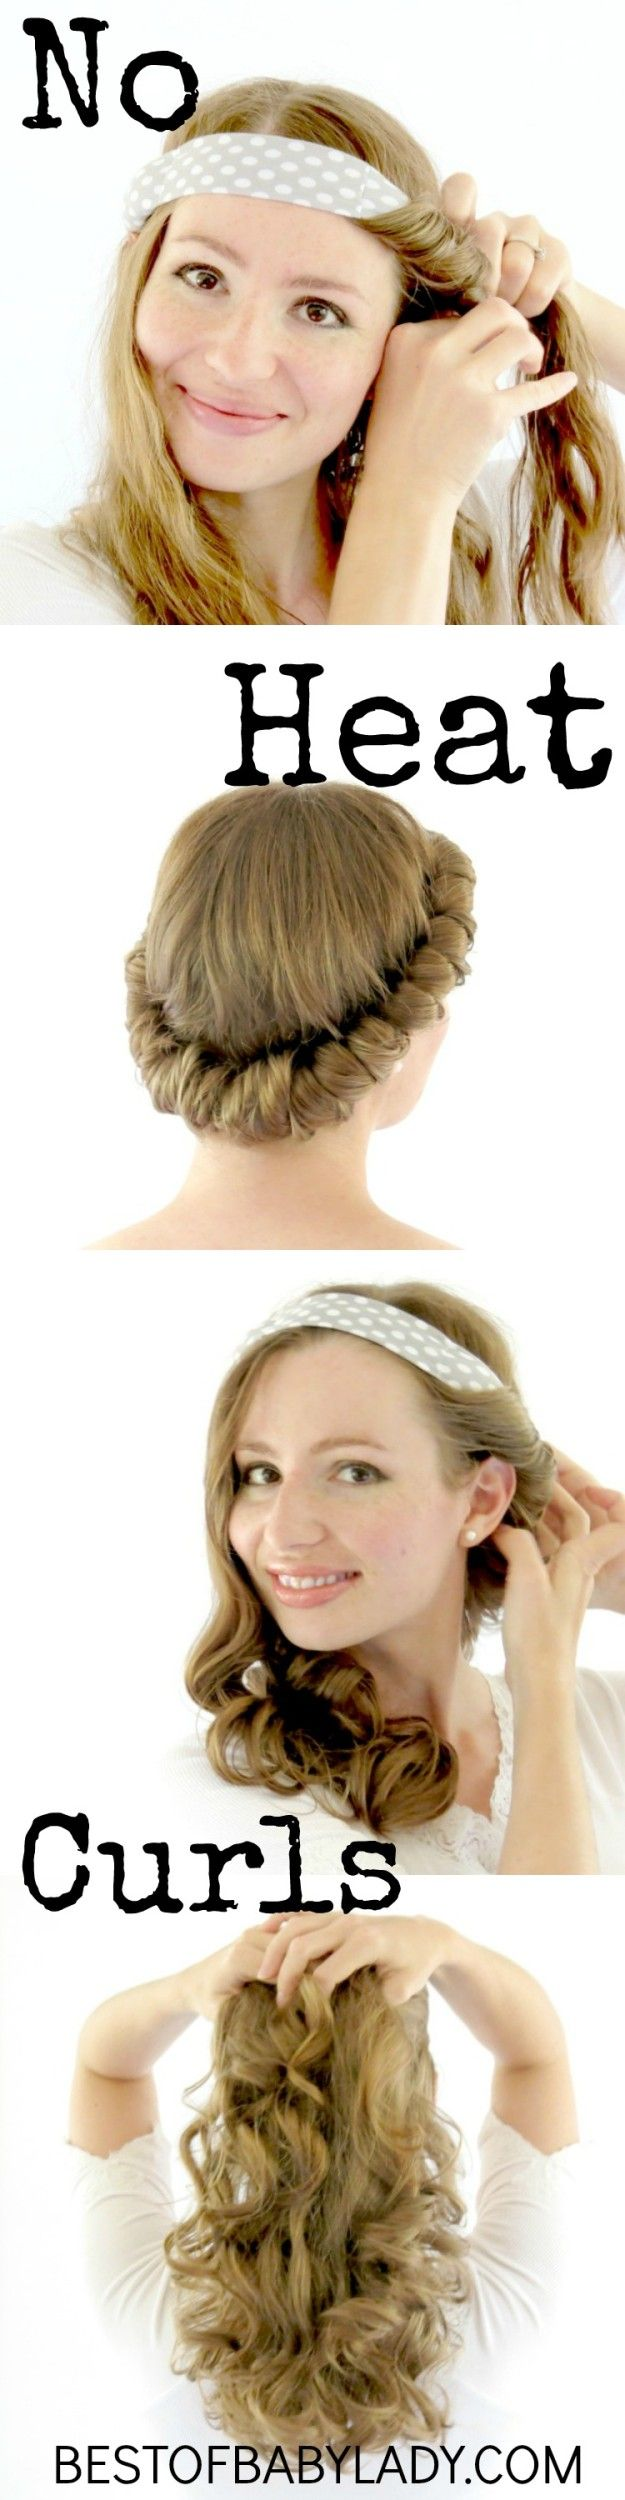 Get gorgeous curls no heat curls with the Savvy Curls hair wrap. It is an amazing time saver and keeps your hair healthy! Use the Savvy Curls Coupon savvyc1 (all lowercase) for $2 off any order. www.savvycurls.com